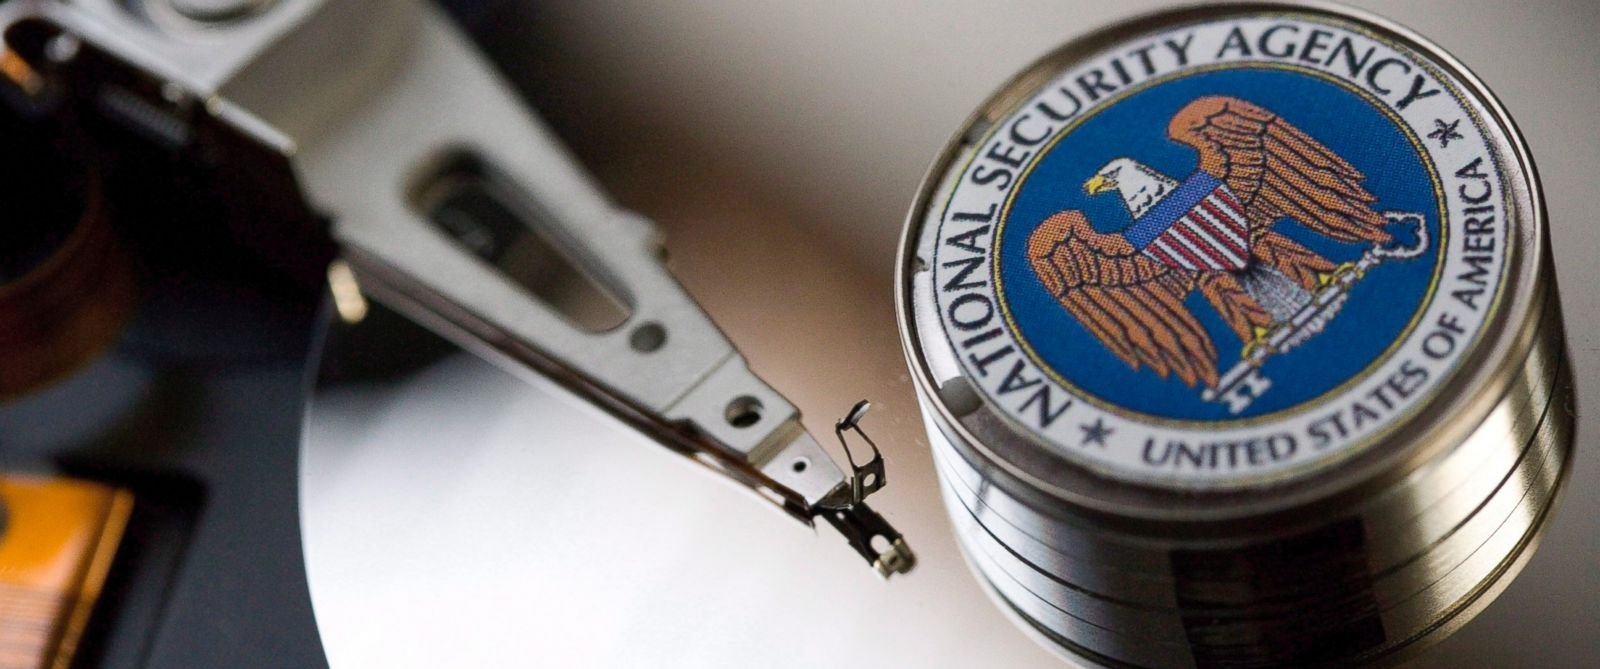 PHOTO: A computer hard drive with the logo of the National Security Agency (NSA) is seen Dec. 12, 2014 in Bonn, Germany.